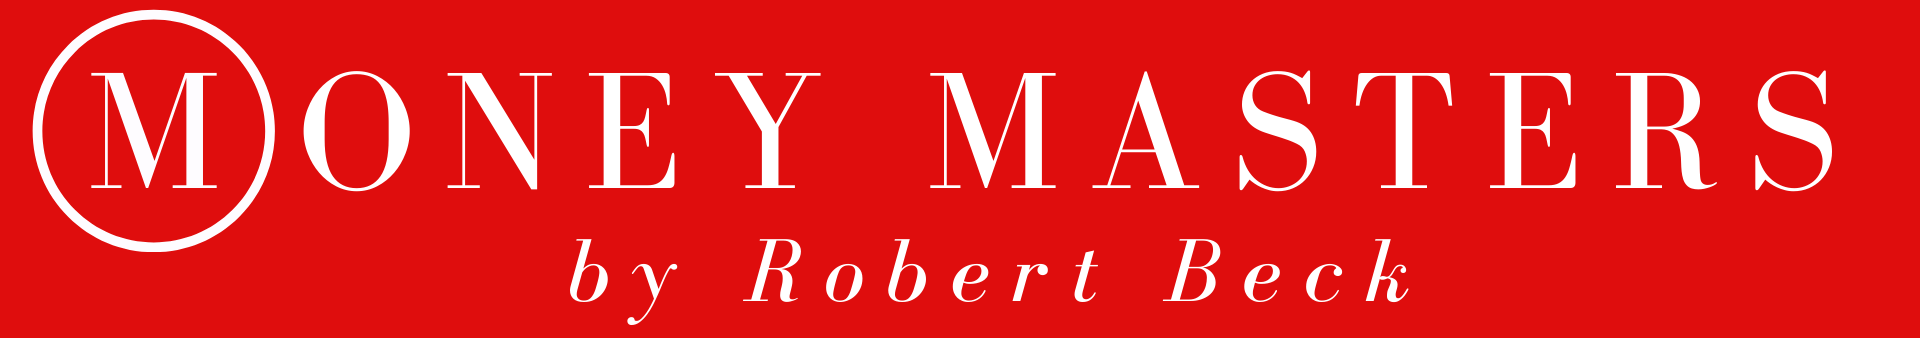 MONEY MASTERS by Robert Beck